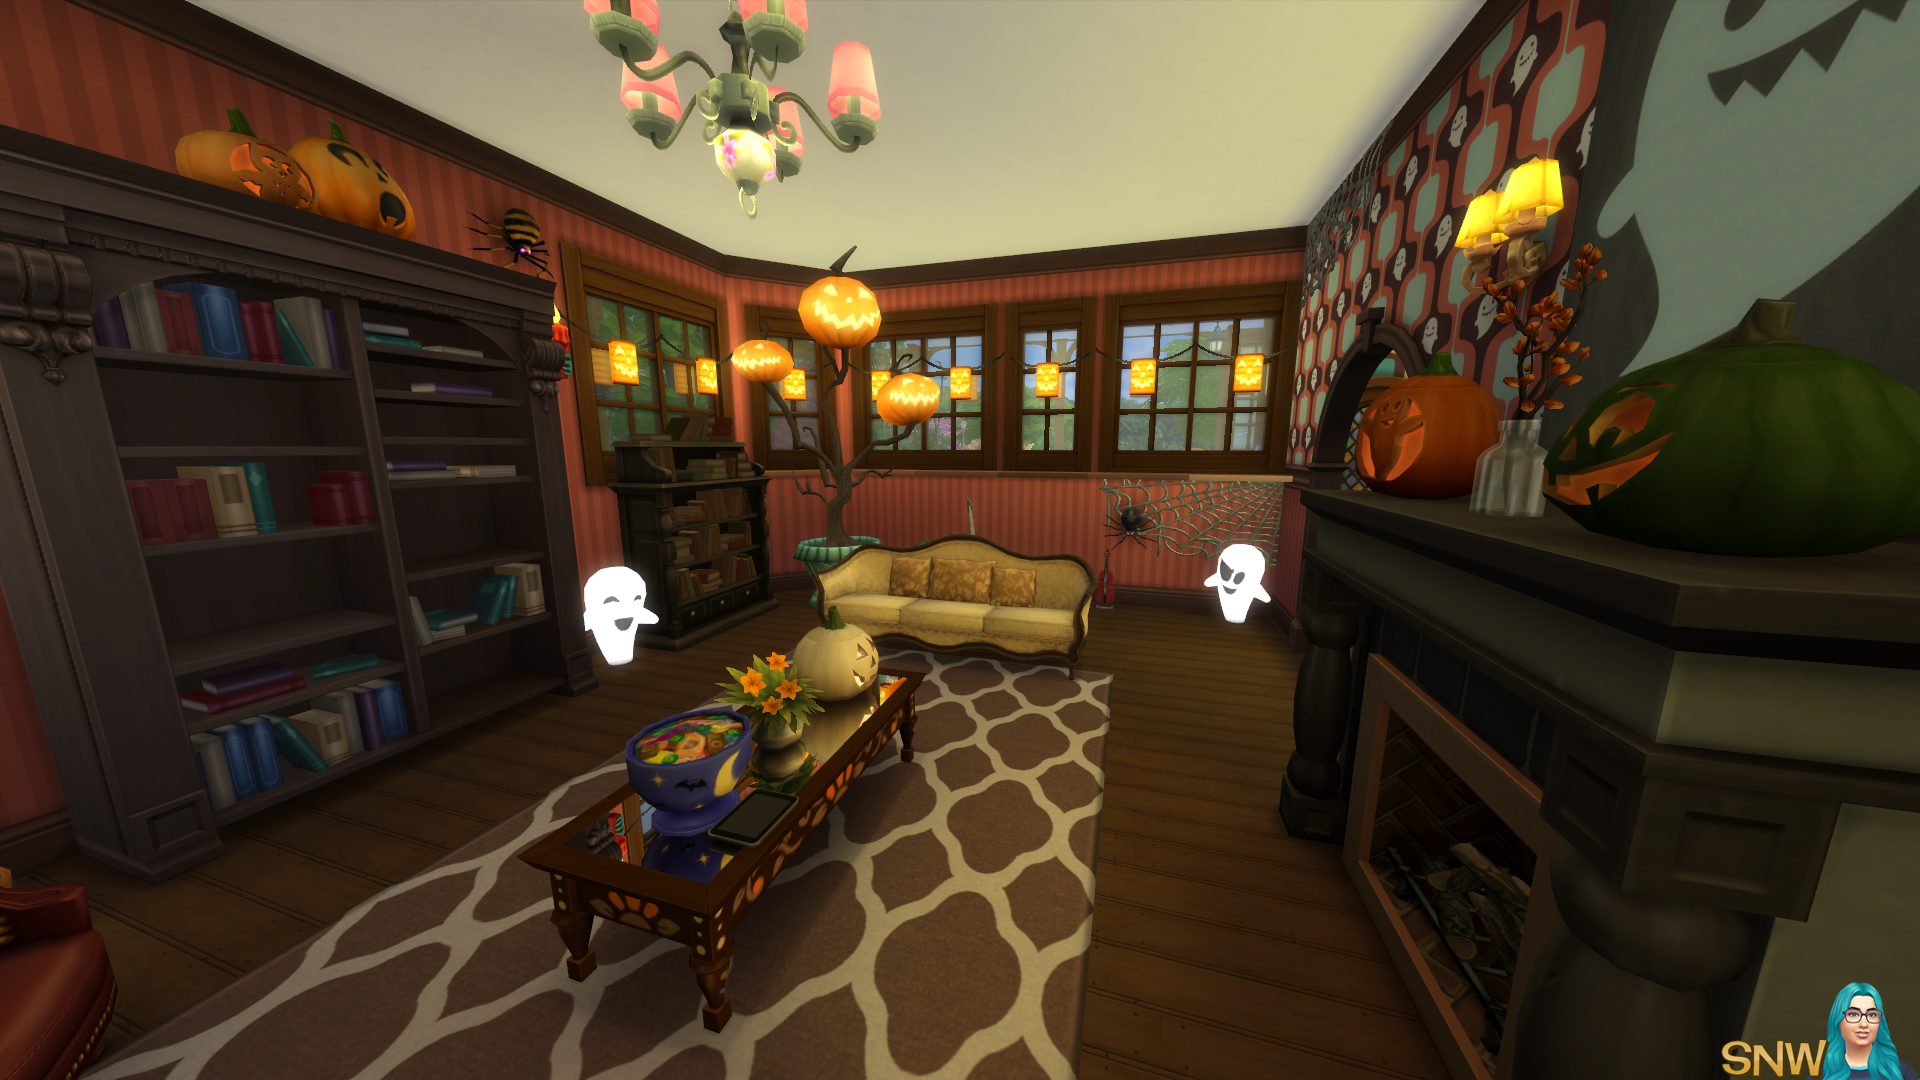 Spooky & Cute Victorian Home